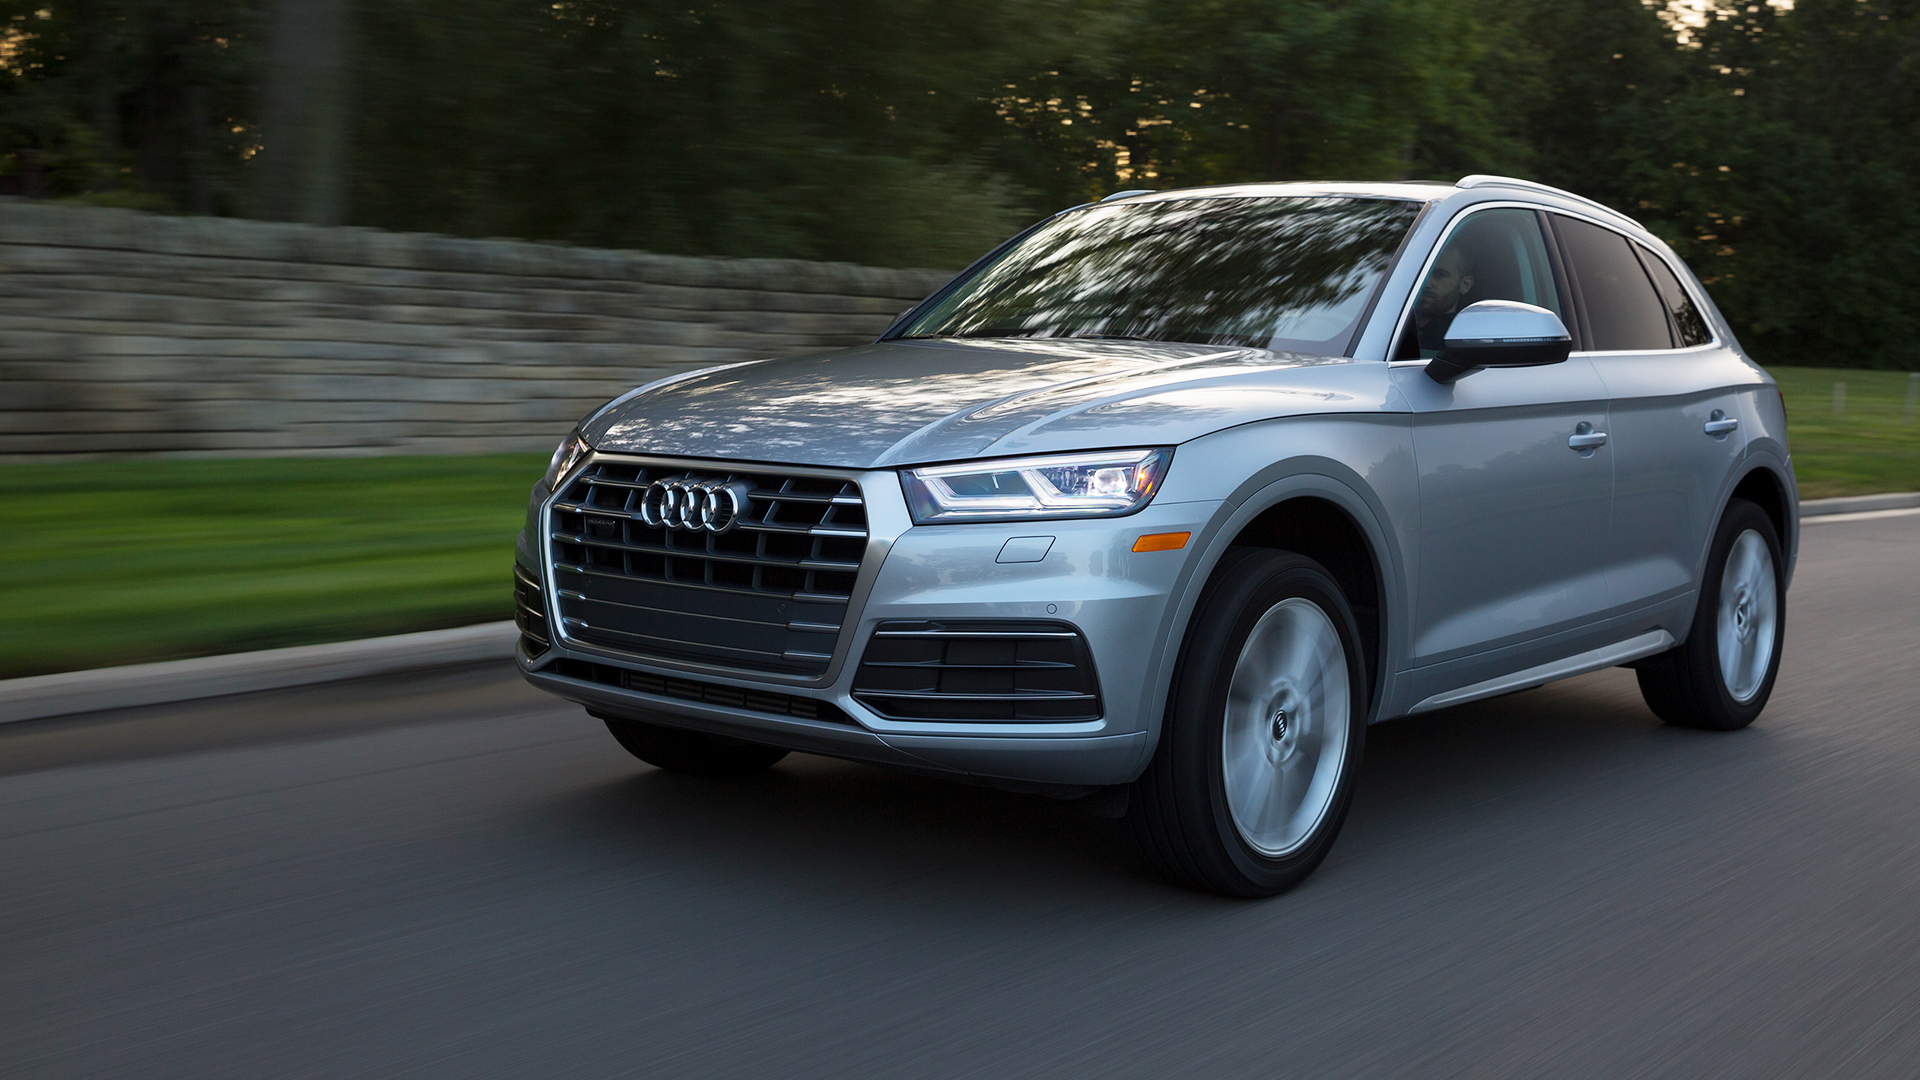 2018 audi q5 2 0t prestige review beauty tech and brawn if mostly inside the drive. Black Bedroom Furniture Sets. Home Design Ideas